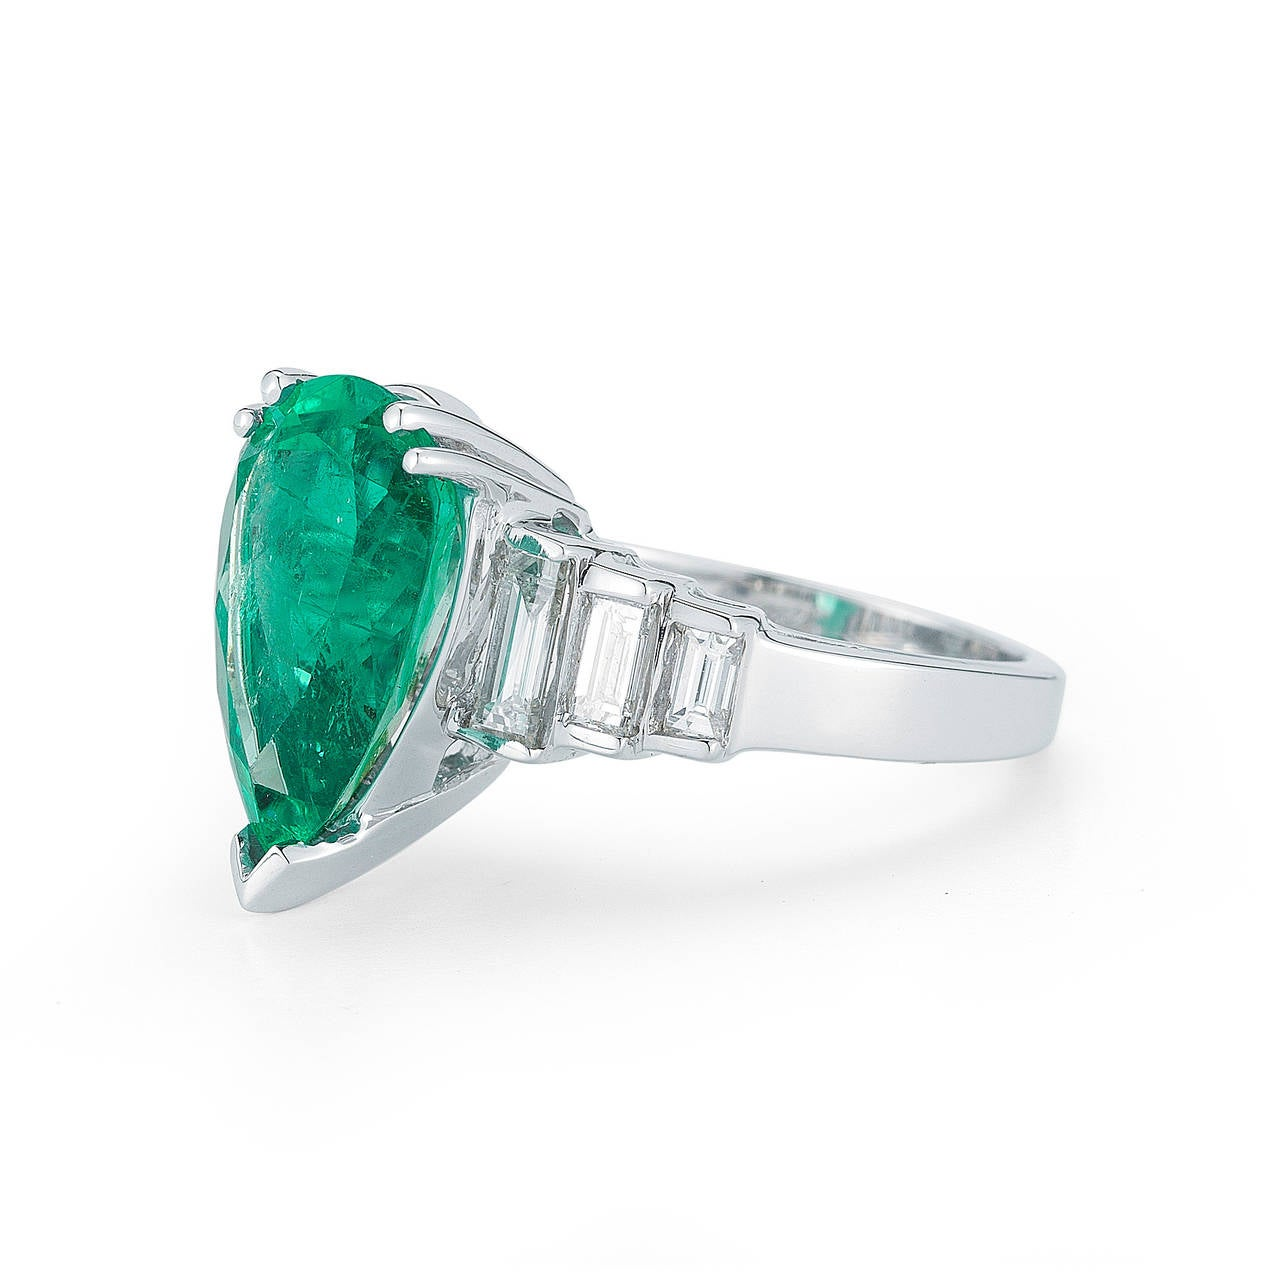 4 04 carats charming pear shaped emerald gold